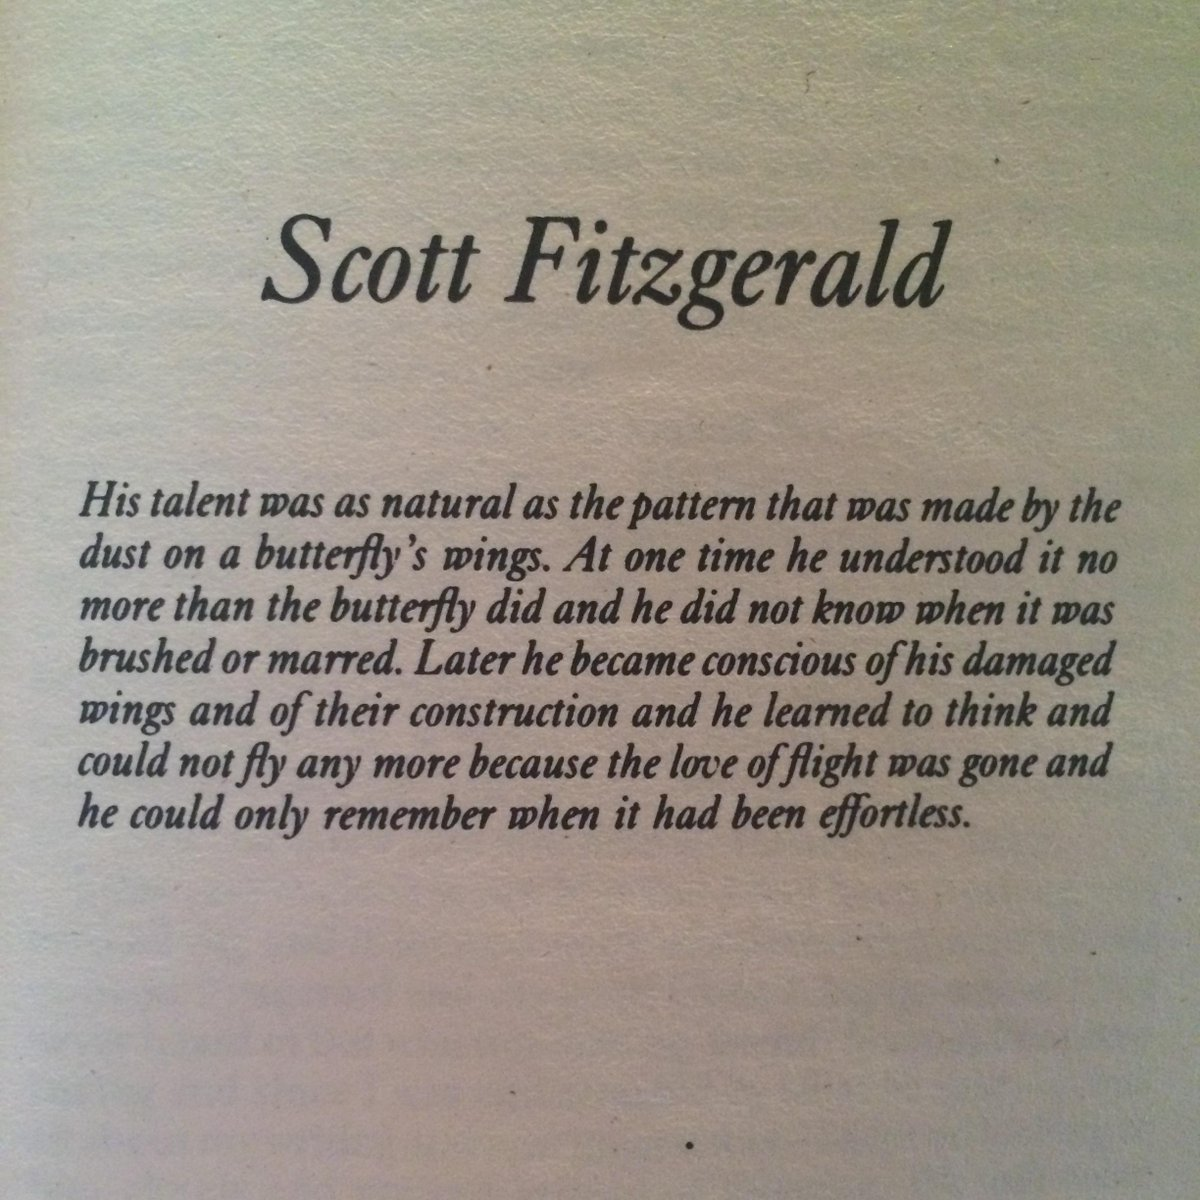 F. Scott Fitzgerald was born on this day in 1896. Here are Hemingway's sentiments on the man who brought us Gatsby. http://t.co/COwFkCHFvC